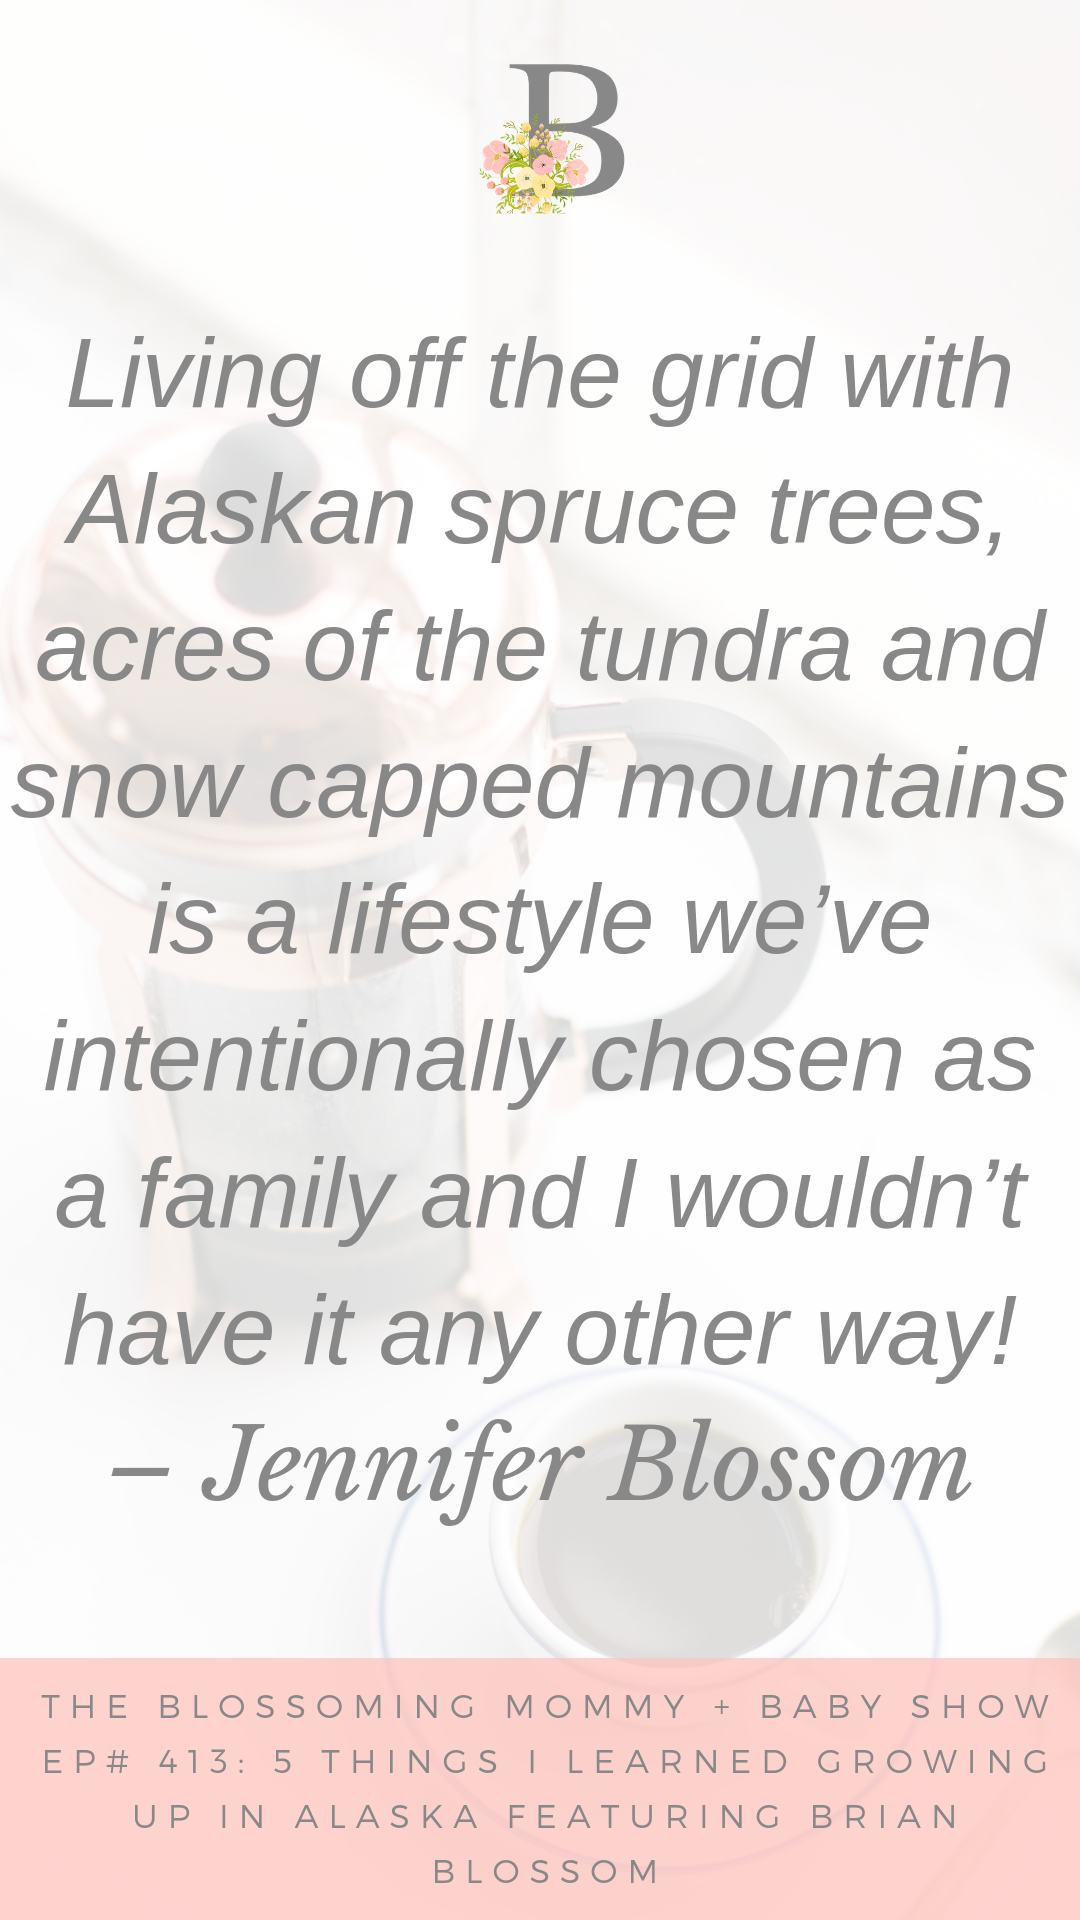 413 5 Things I learned growing up in Alaska featuring Brian Blossom!.png